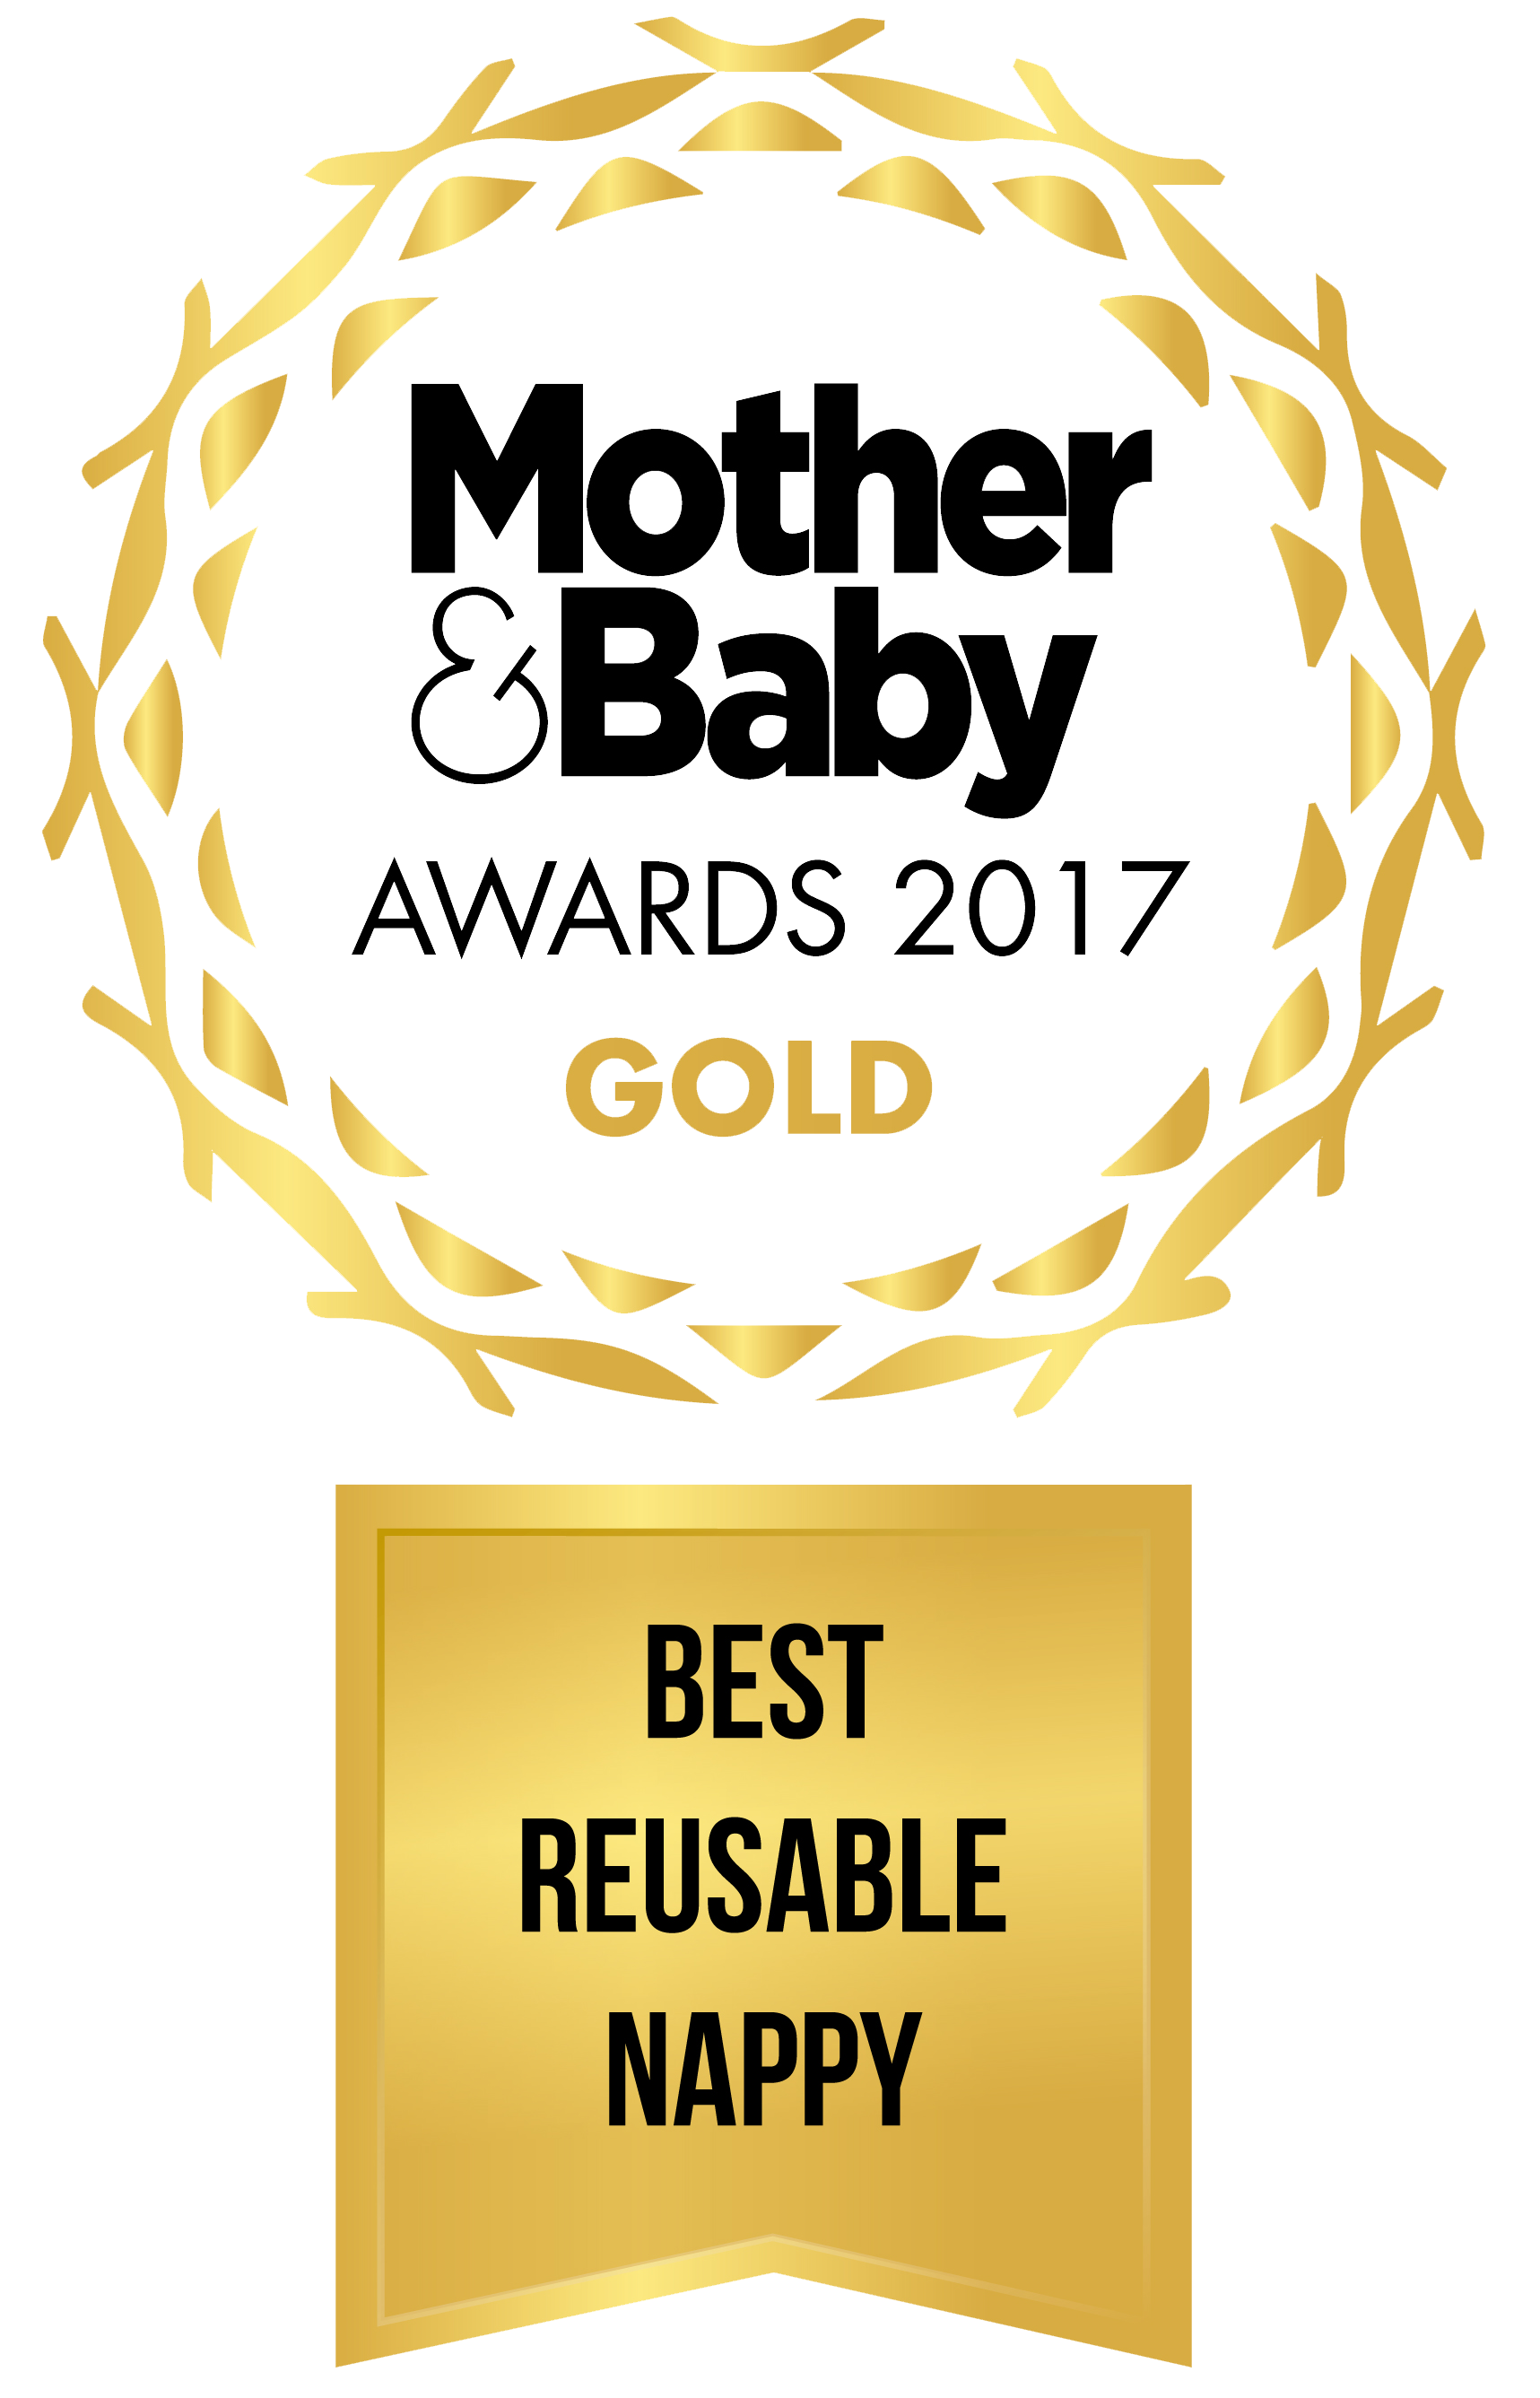 Mother & Baby Awards 2017 Gold